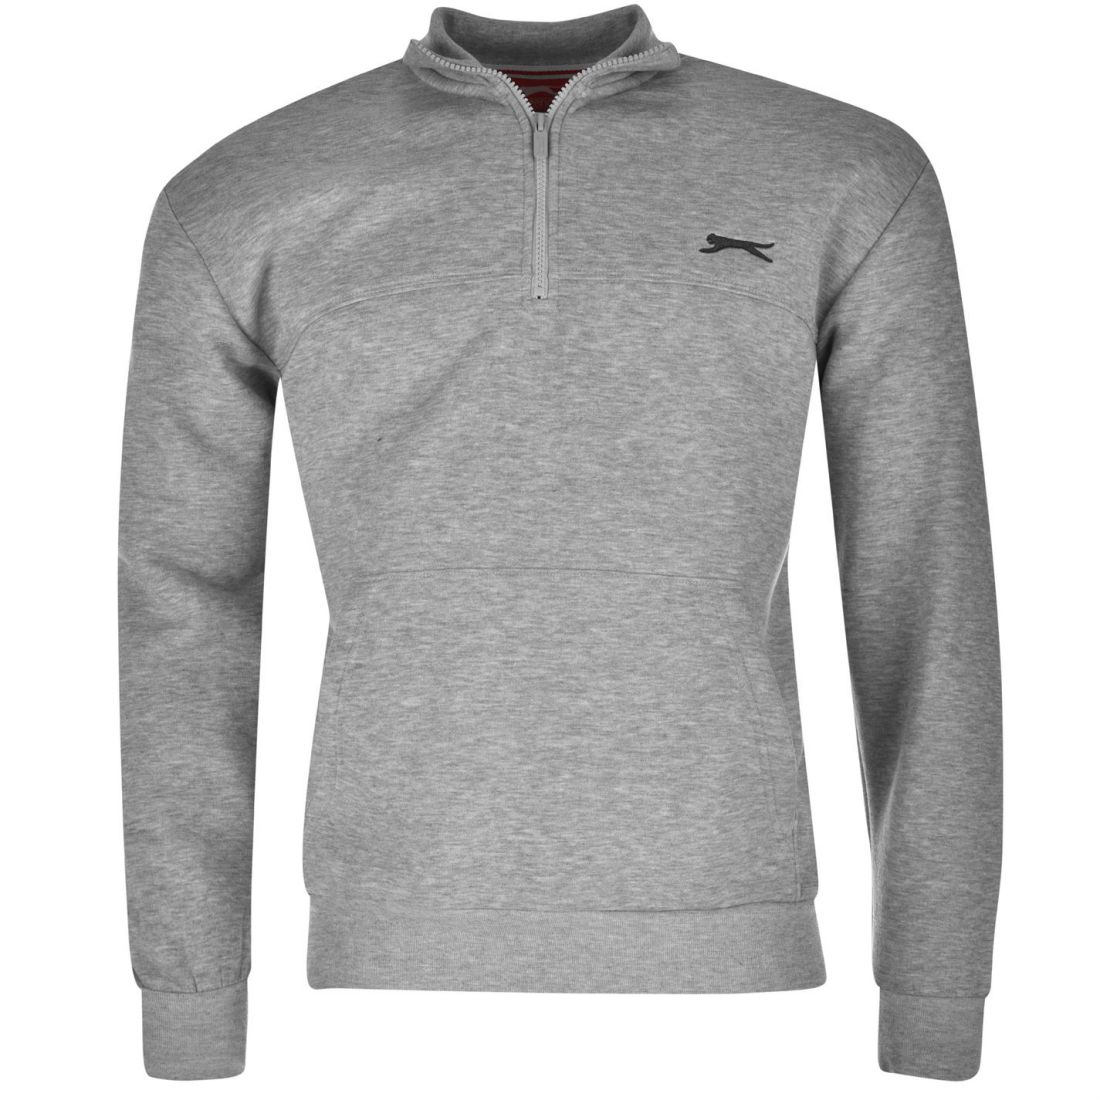 db2be941c49 SLAZENGER QUARTER ZIP Fleece Top Sweatshirt LS Mens Gents - £12.00 ...